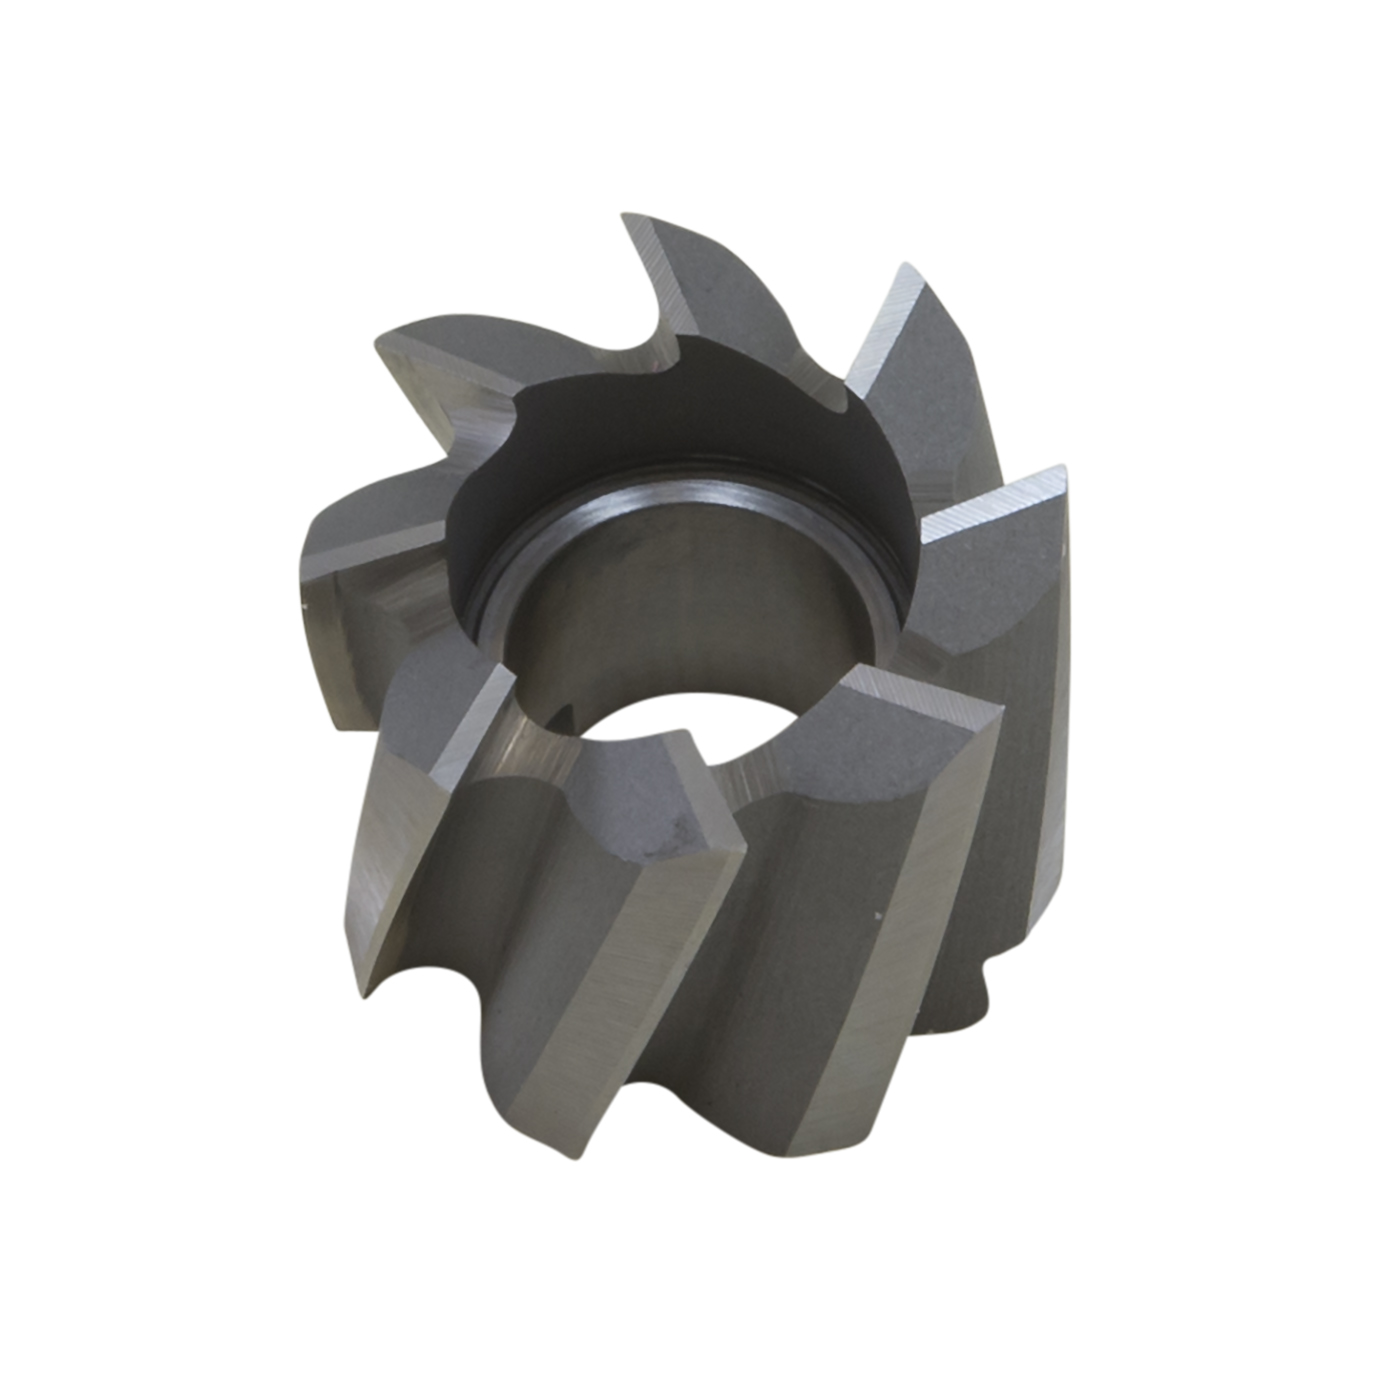 YT H27 - Spindle boring tool replacement bit for Dana 60